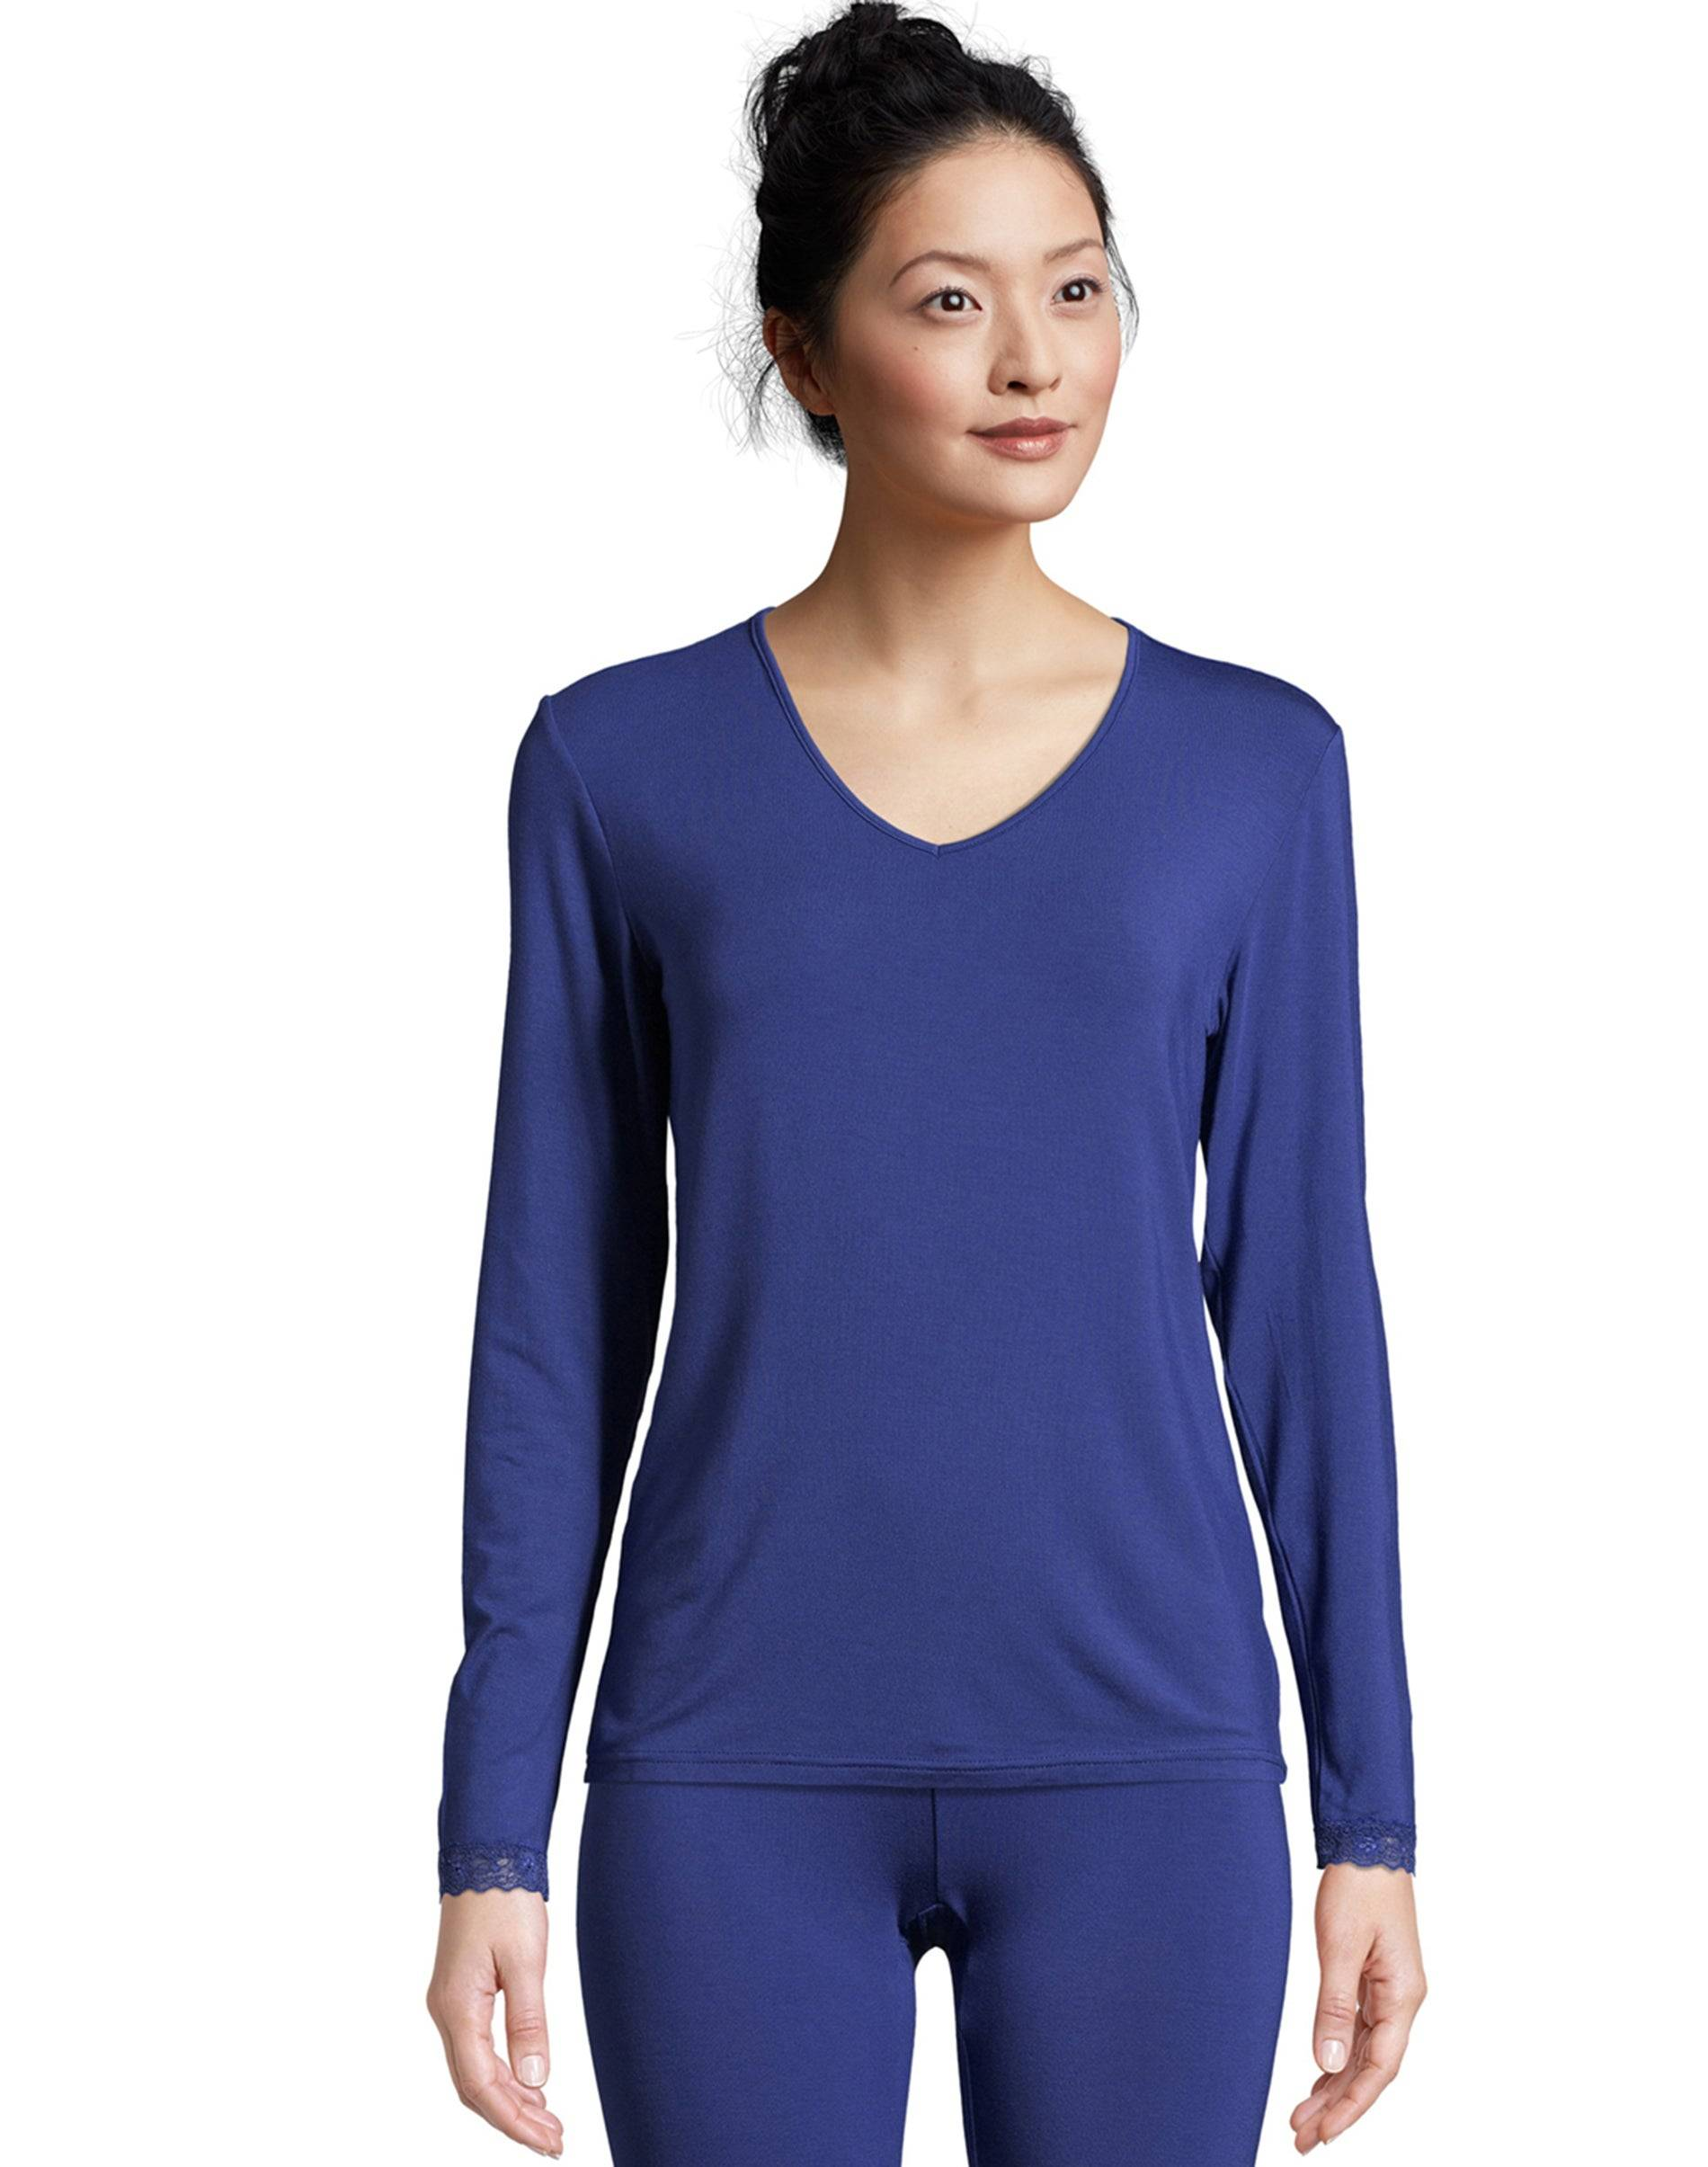 Hanes Women's Comfort Collection Thermal Top Blue M